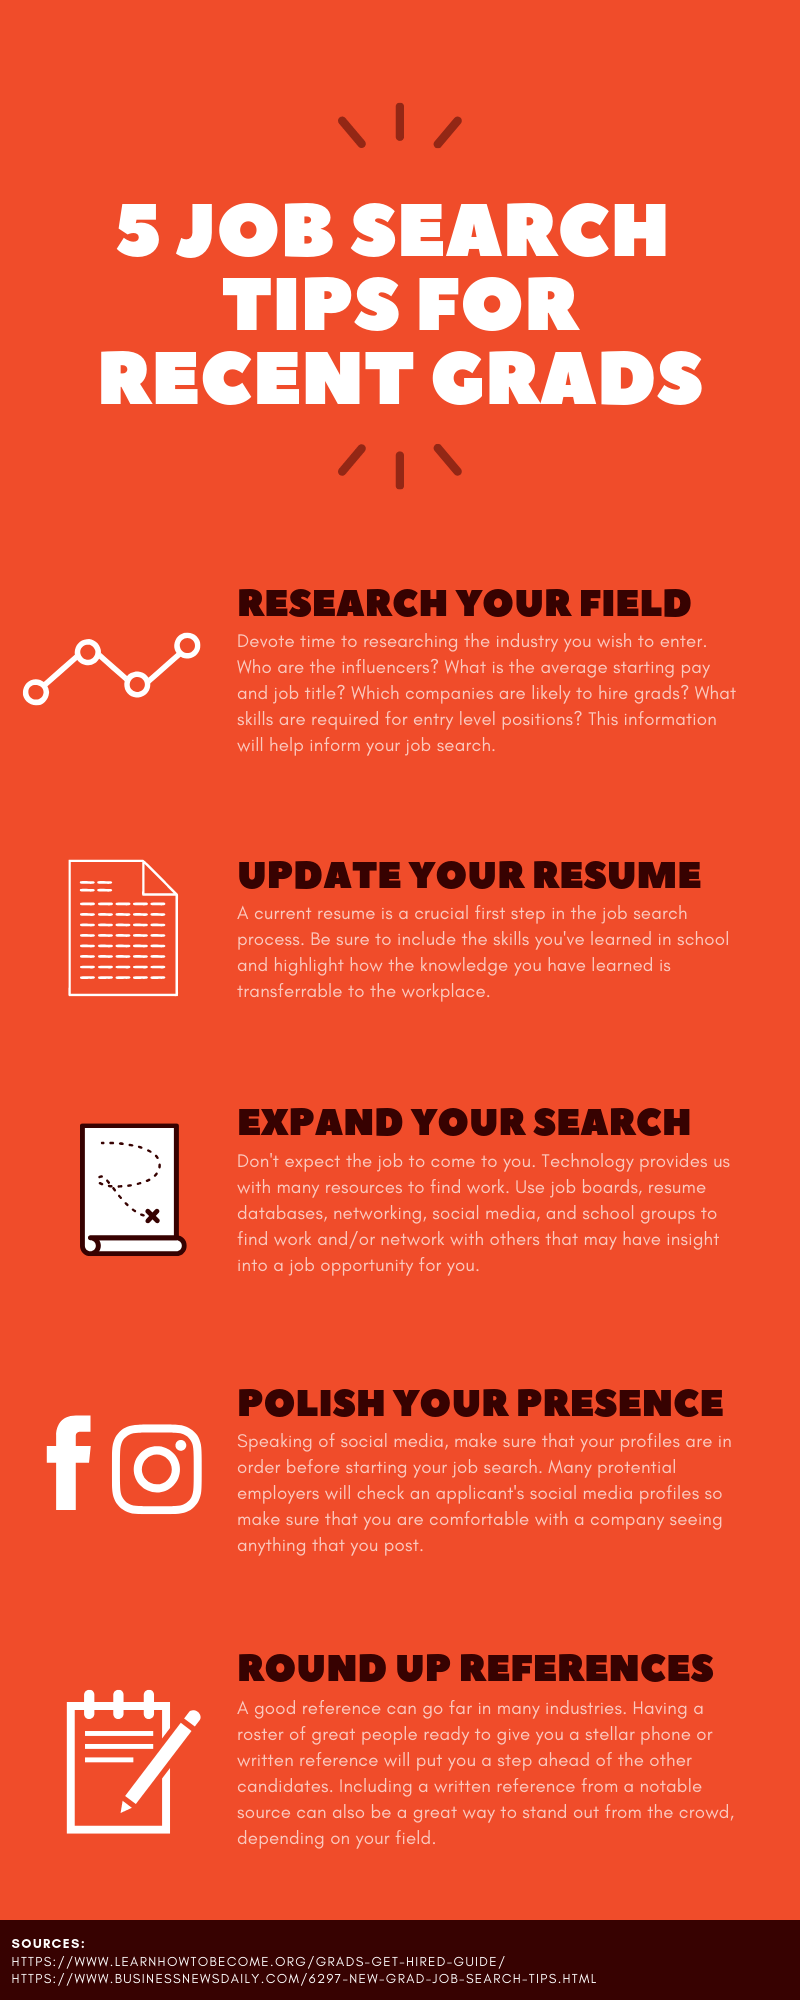 Job search tips for recent grads